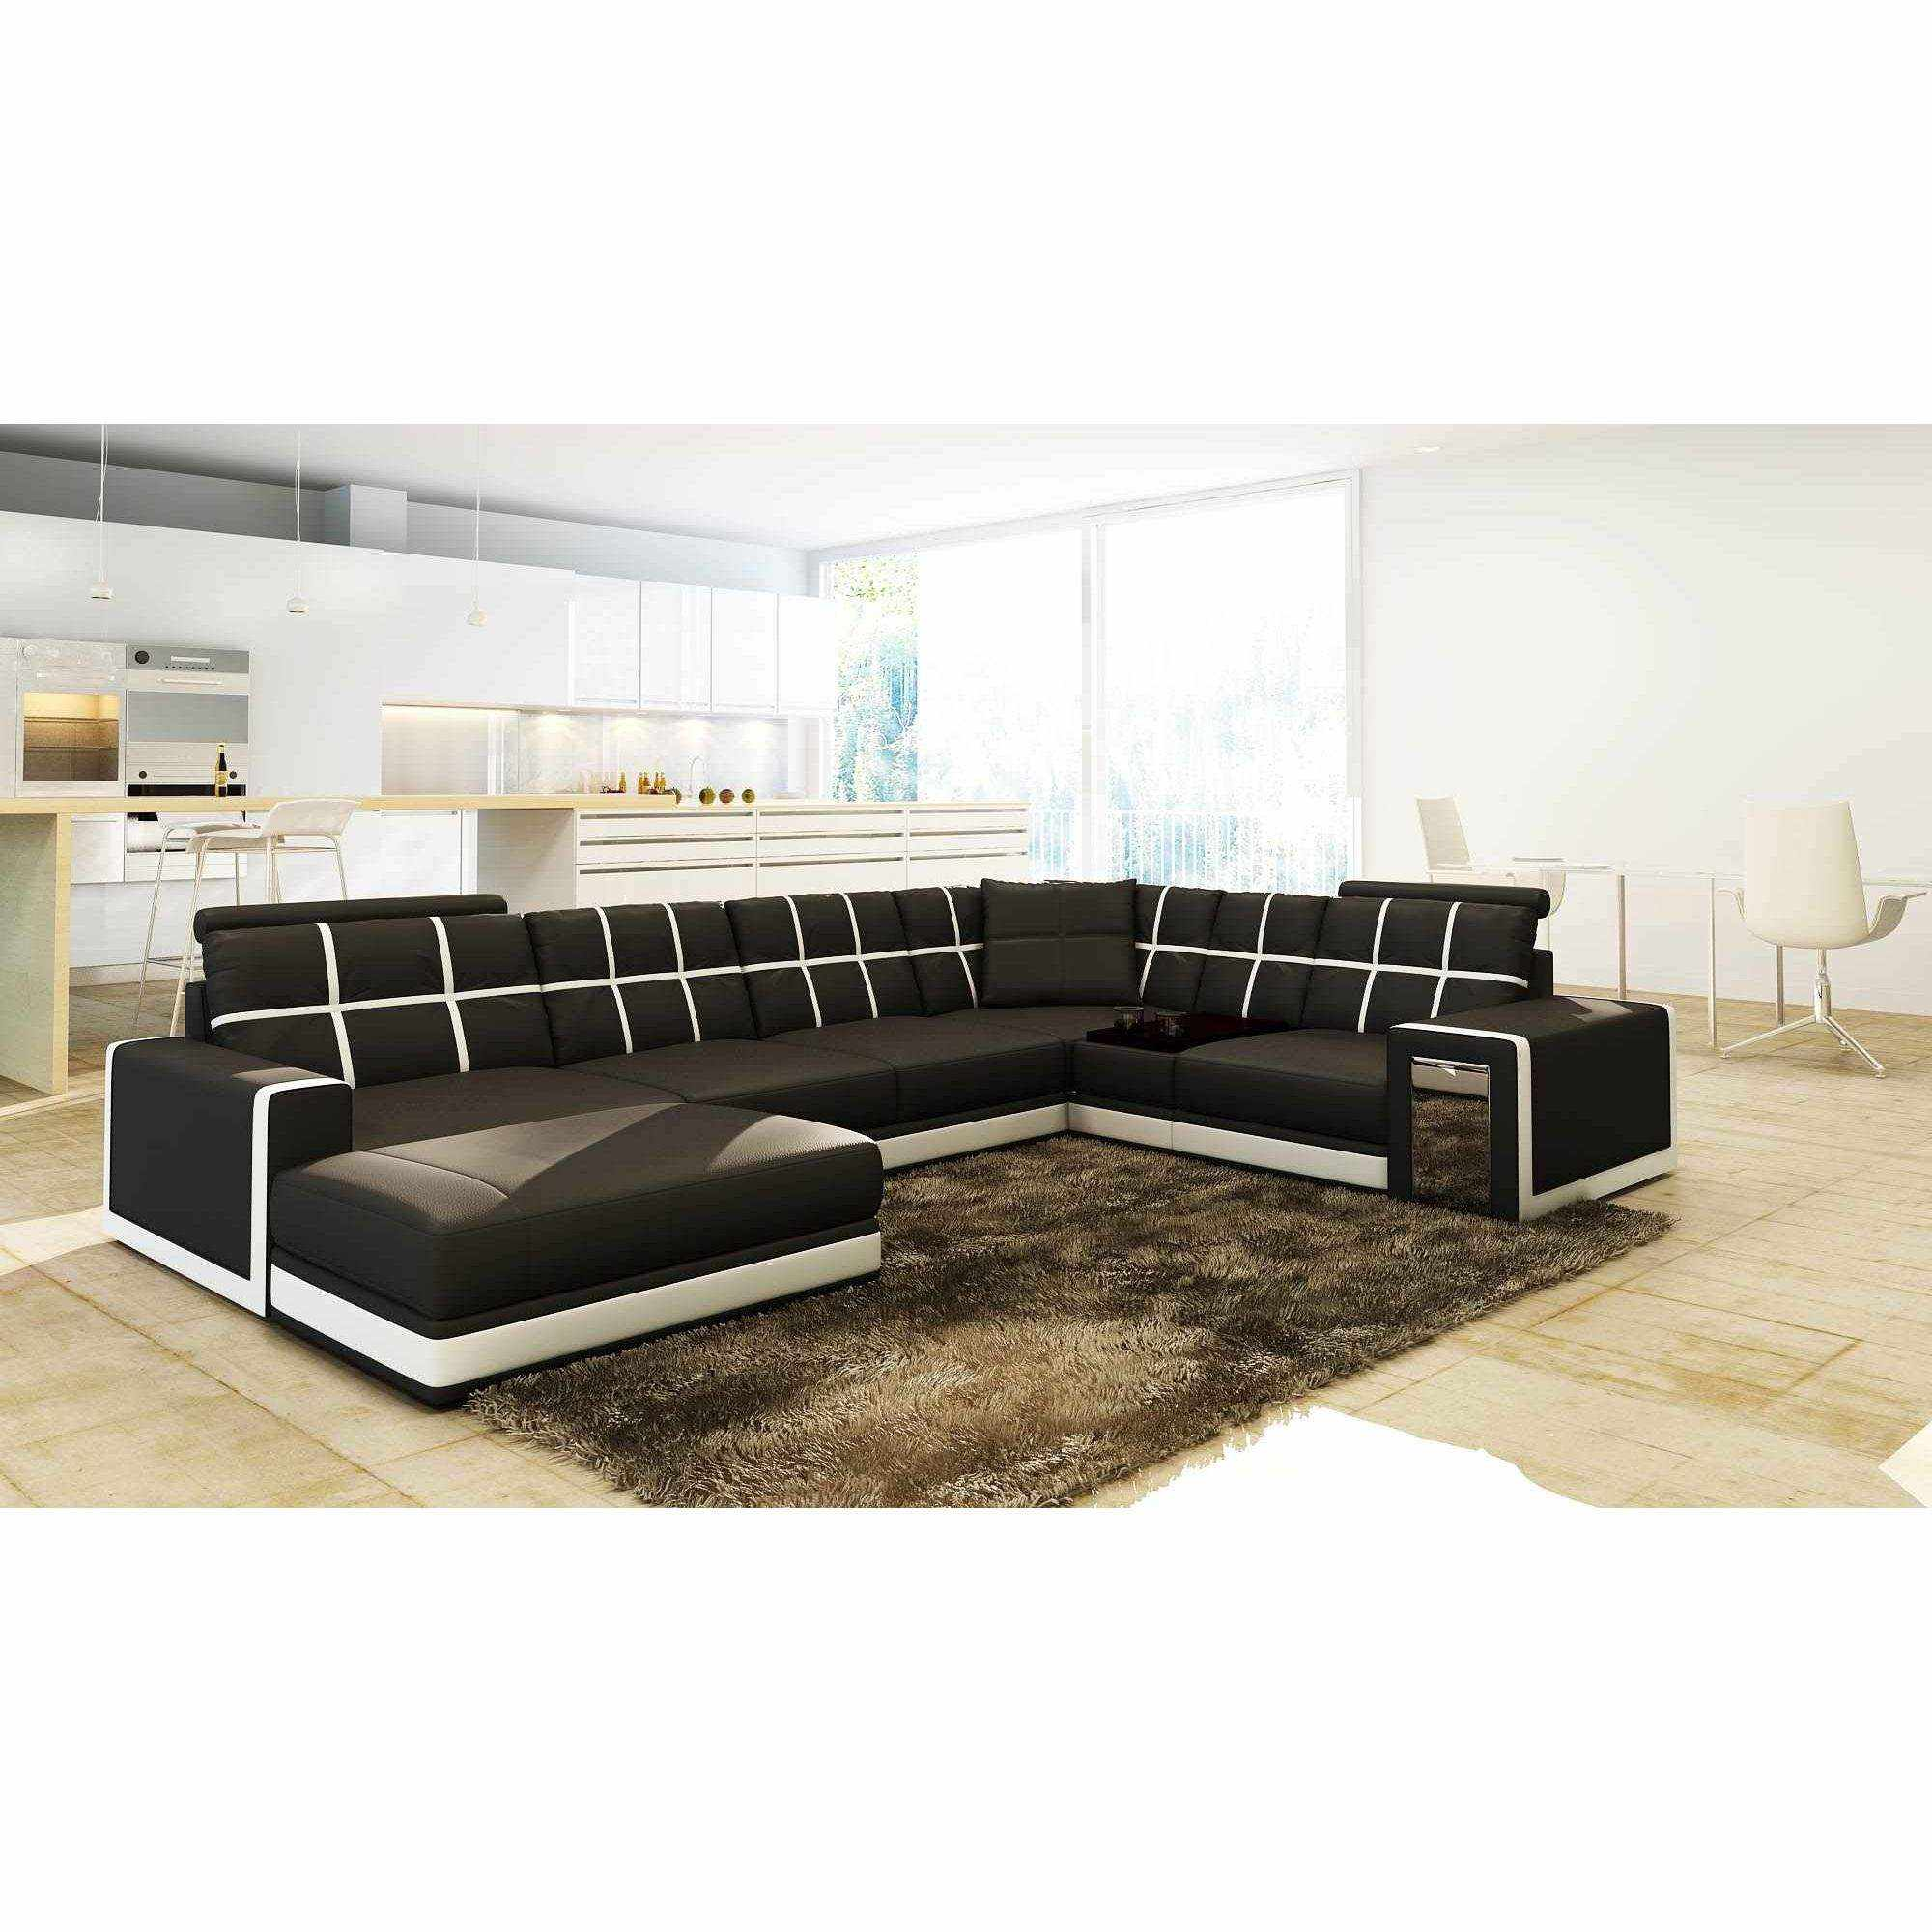 Deco in paris canape d angle panoramique cuir noir et for Canape cuir angle design